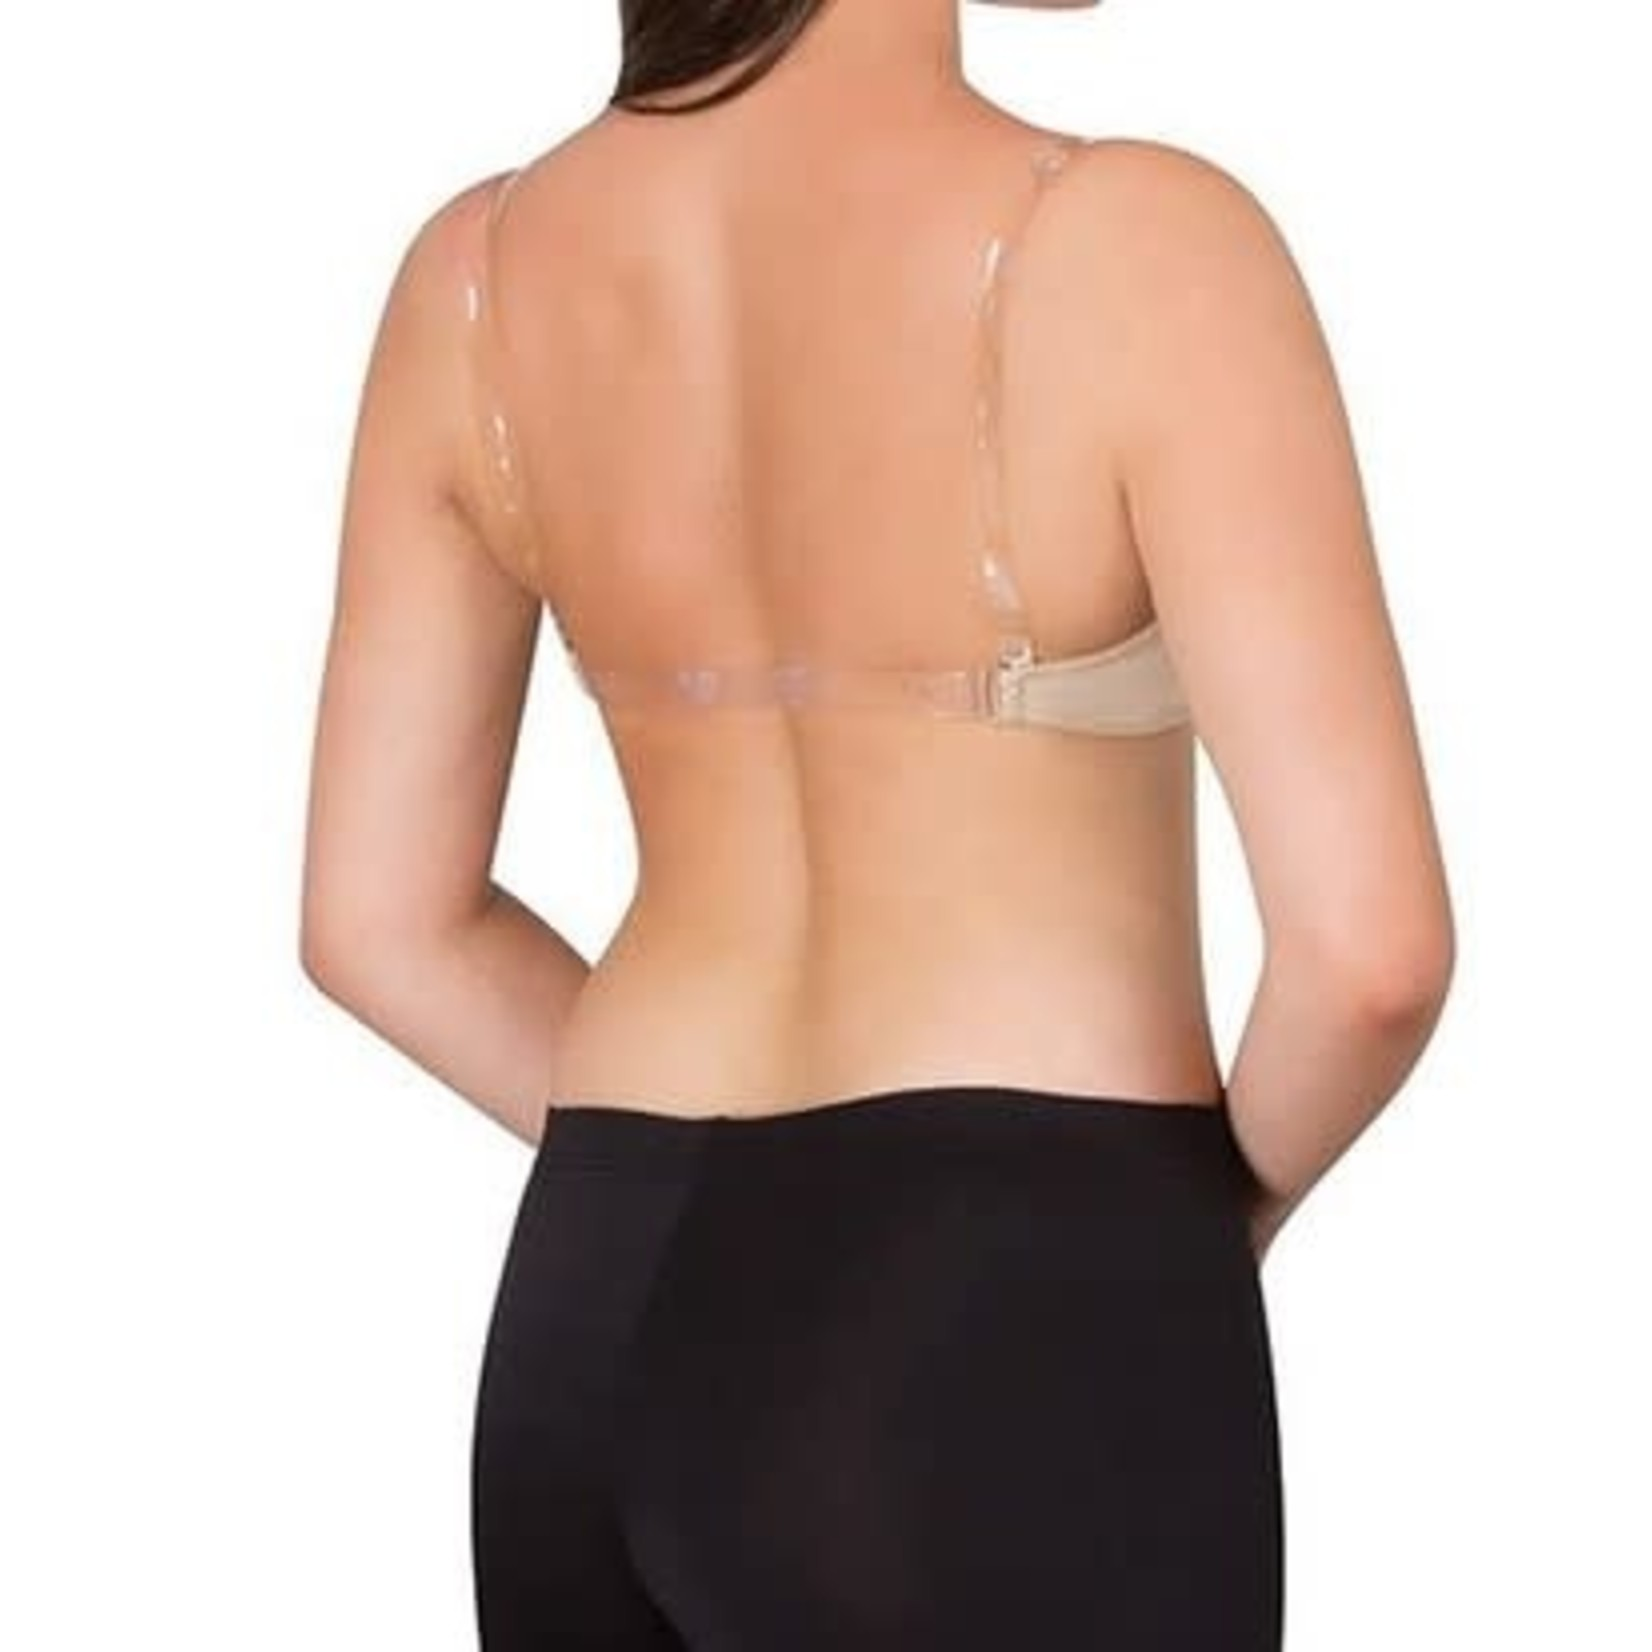 Body Wrappers Body Wrappers 291 Convertible Padded Bra